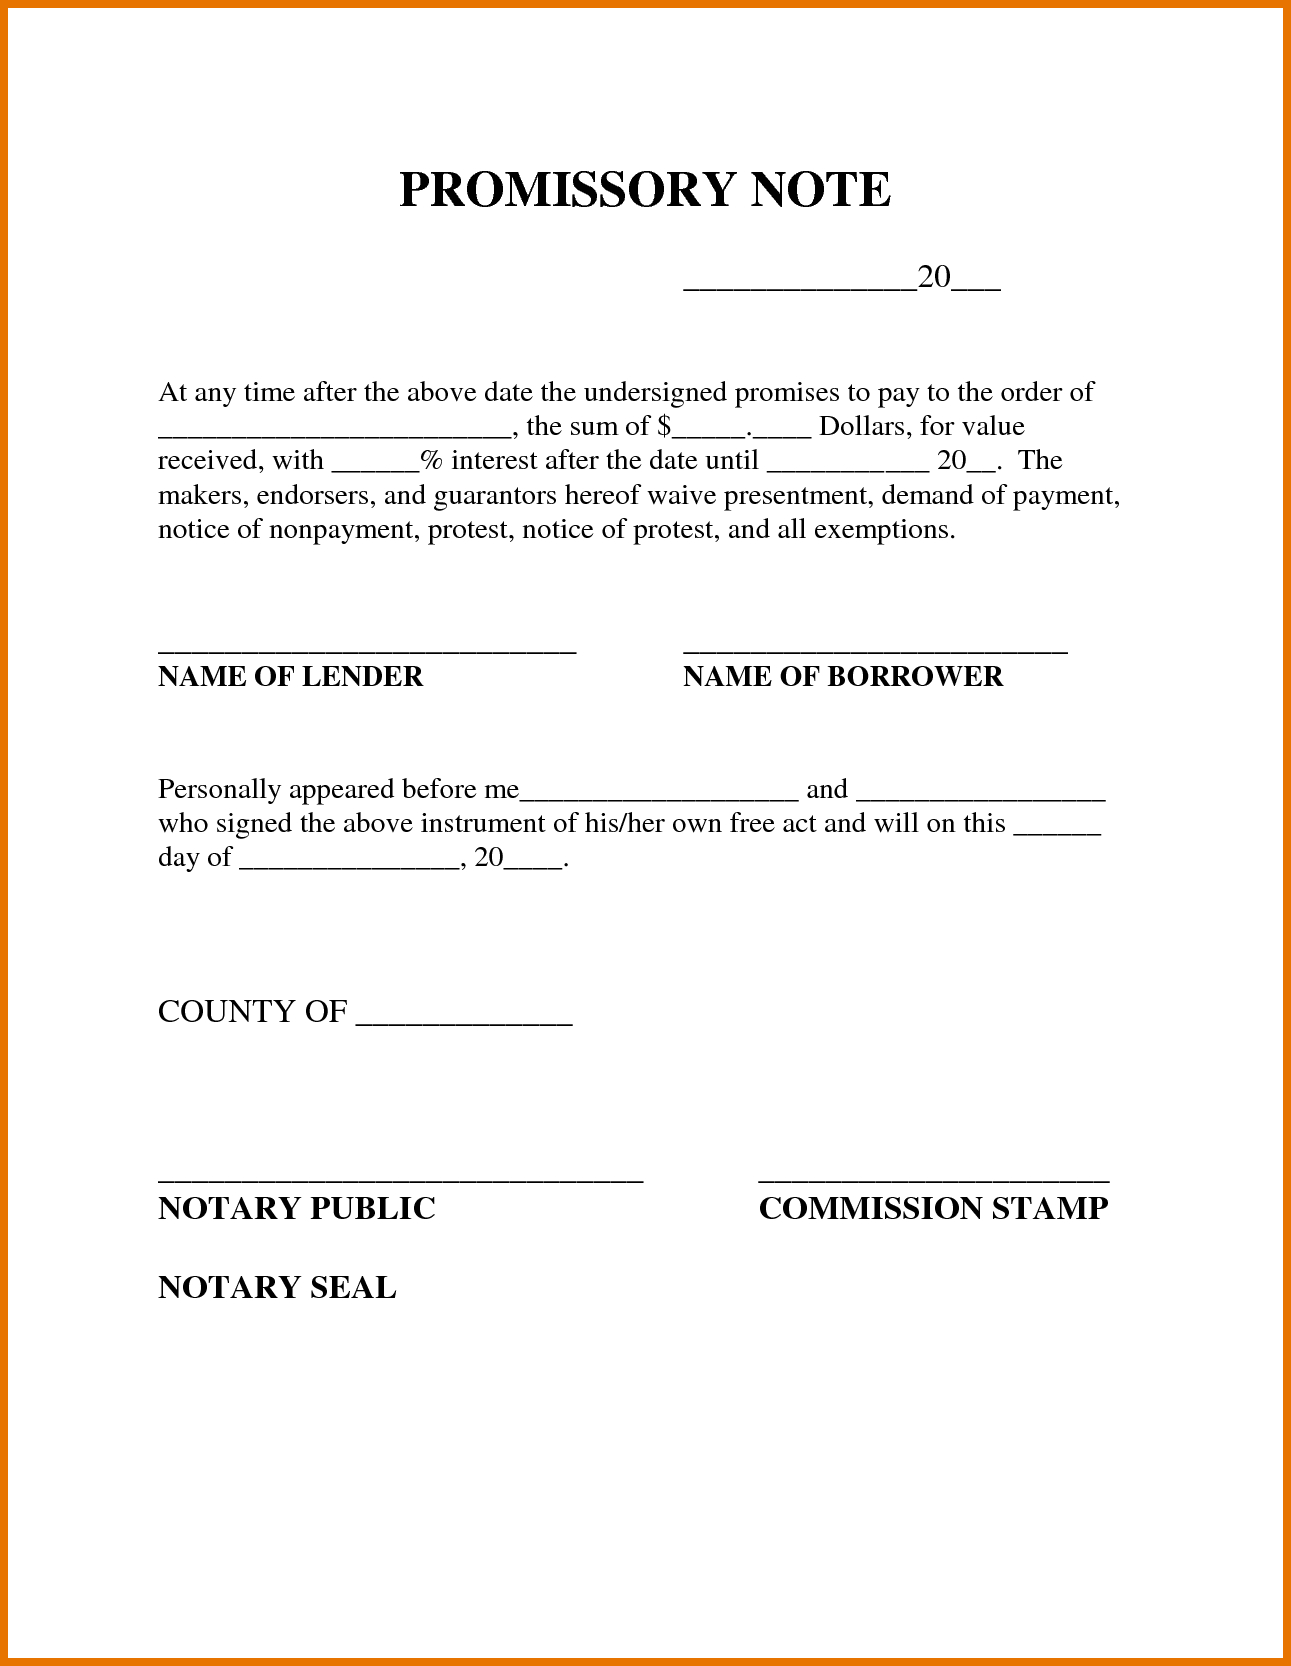 Free Printable Promissory Note Template : Violeet - Free Printable Promissory Note